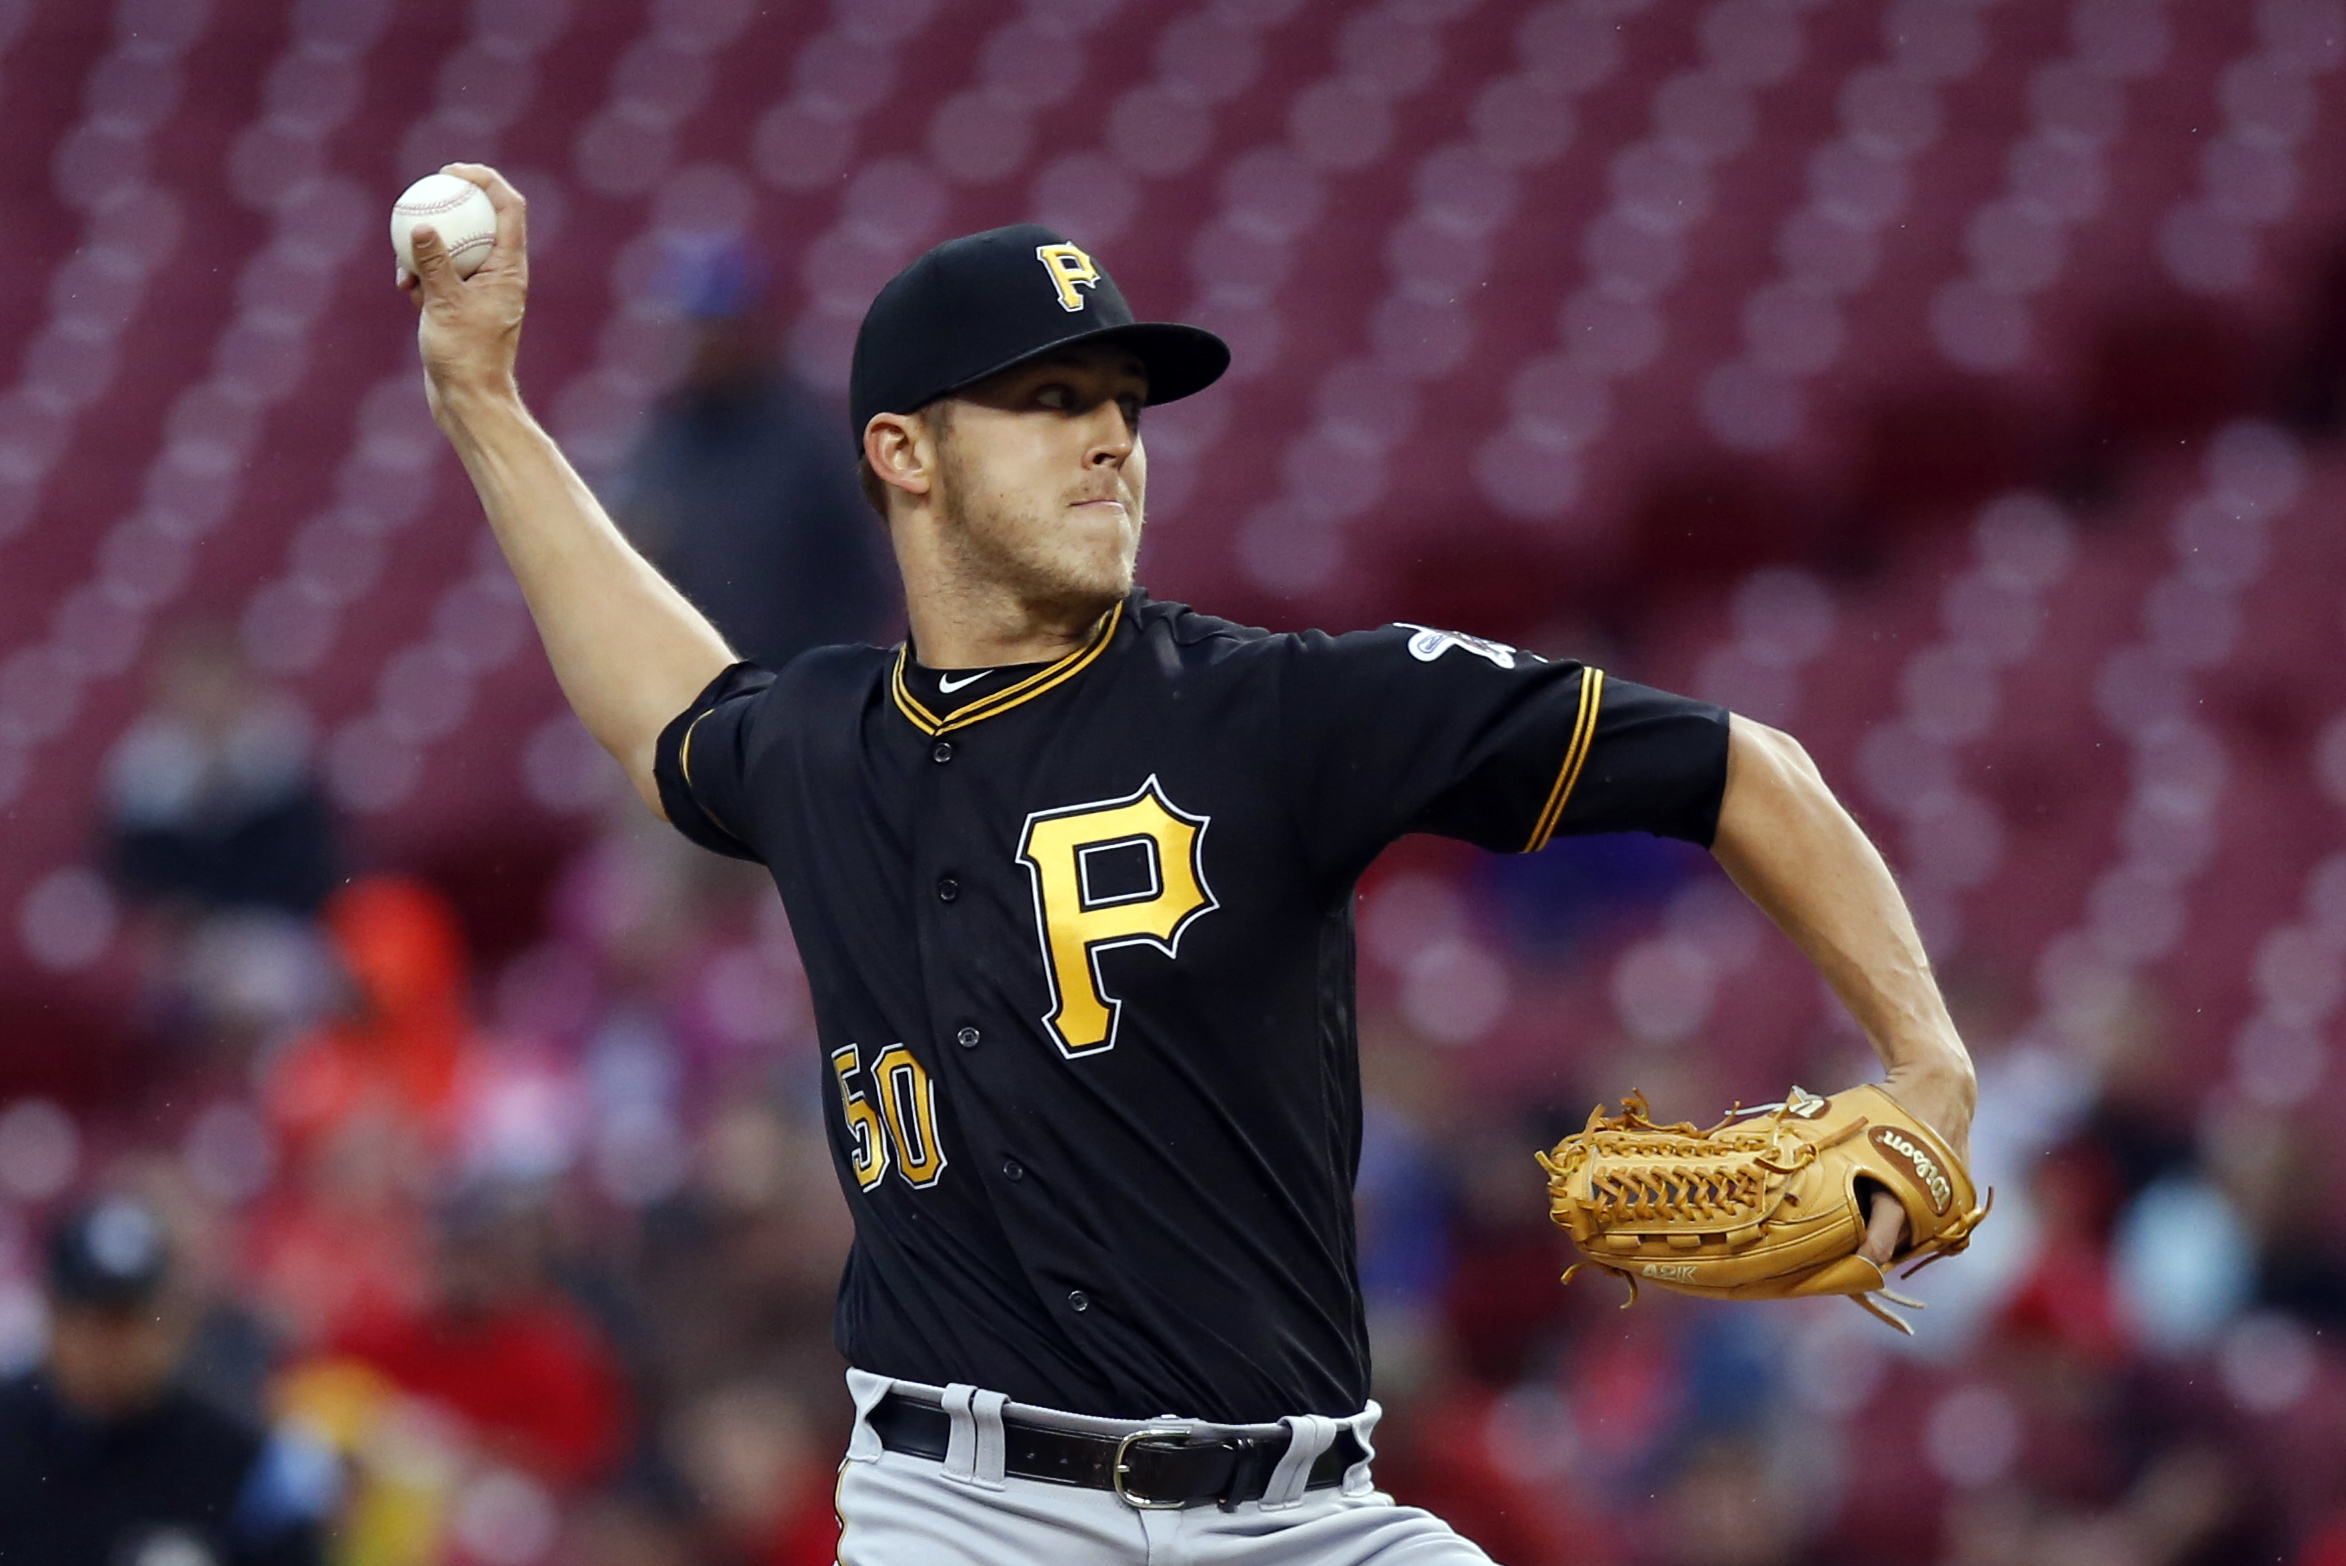 Pirates: Jameson Taillon battling testicular cancer